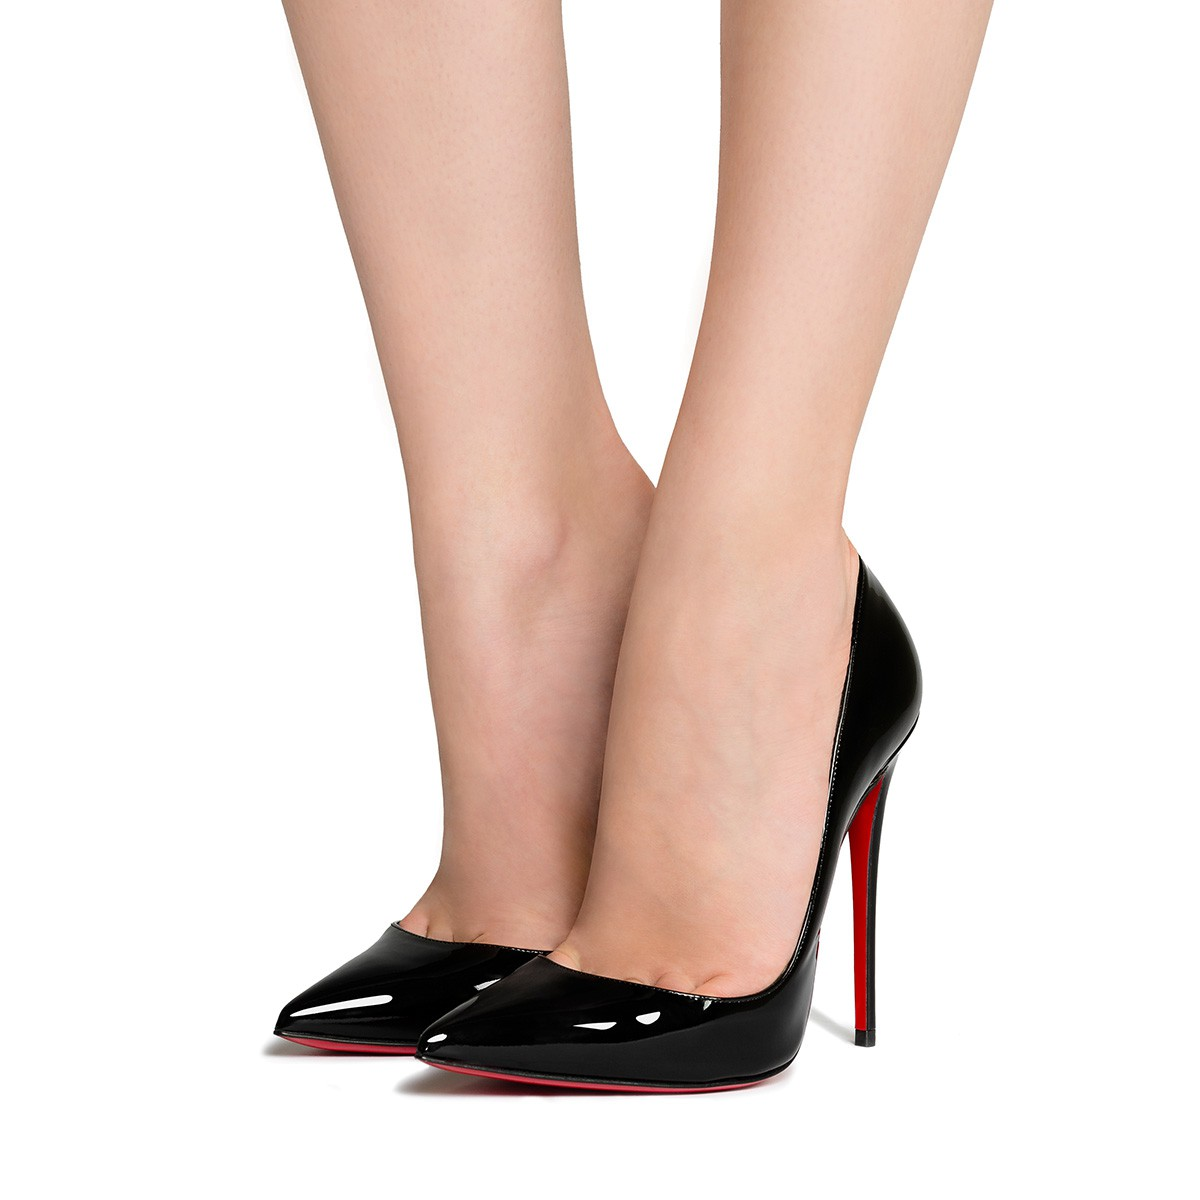 new arrival 49dff 6cf93 SO KATE 120 Black Patent Calfskin - Women Shoes - Christian Louboutin